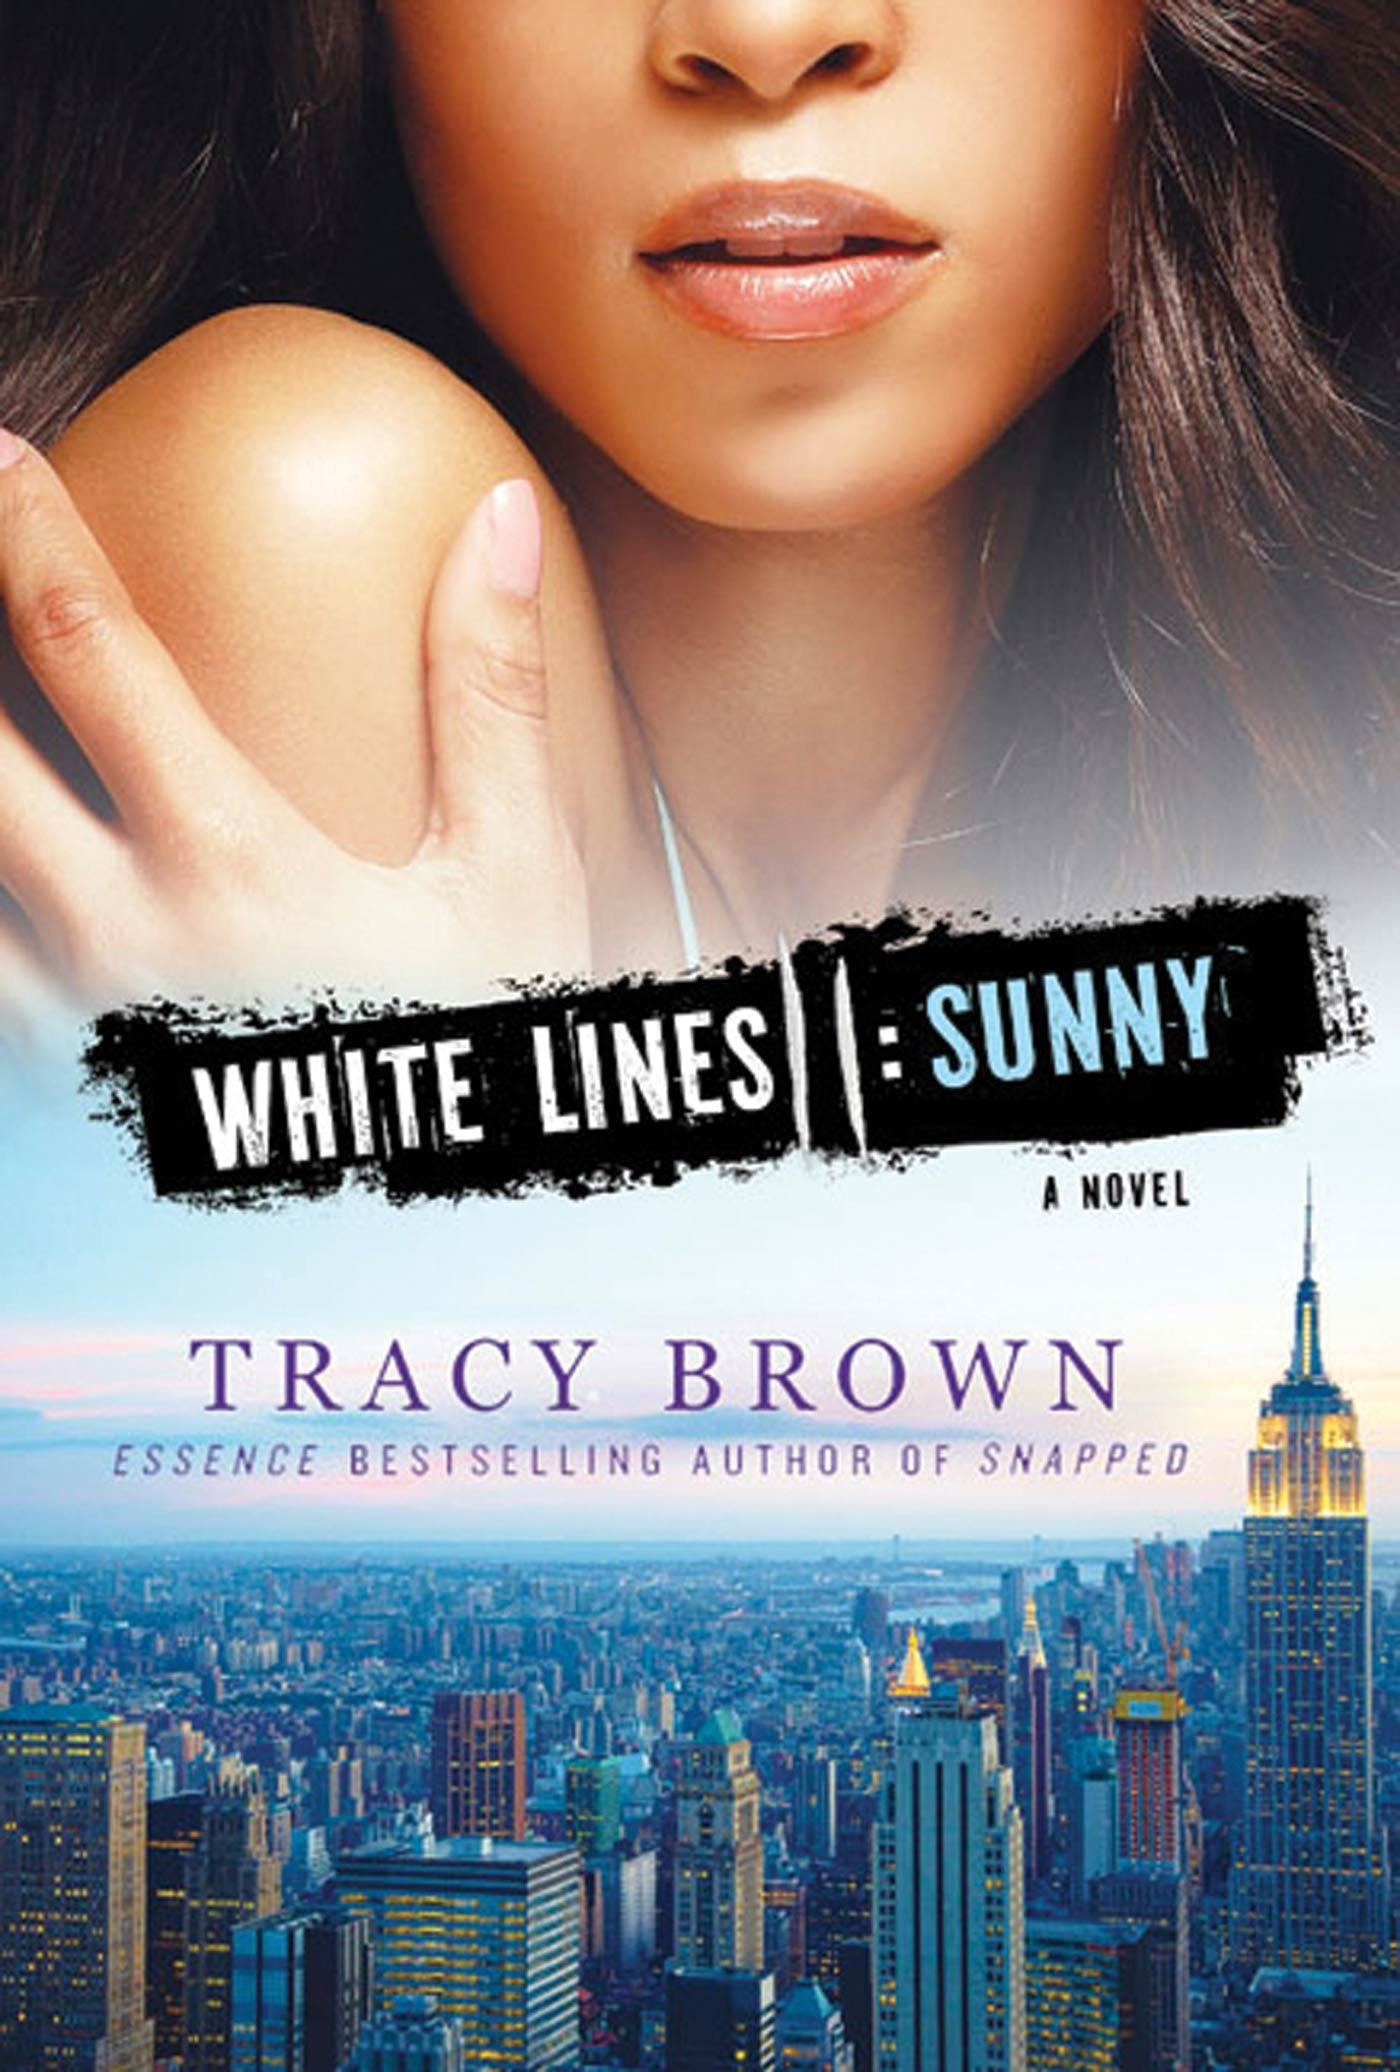 Image of White Lines II: Sunny